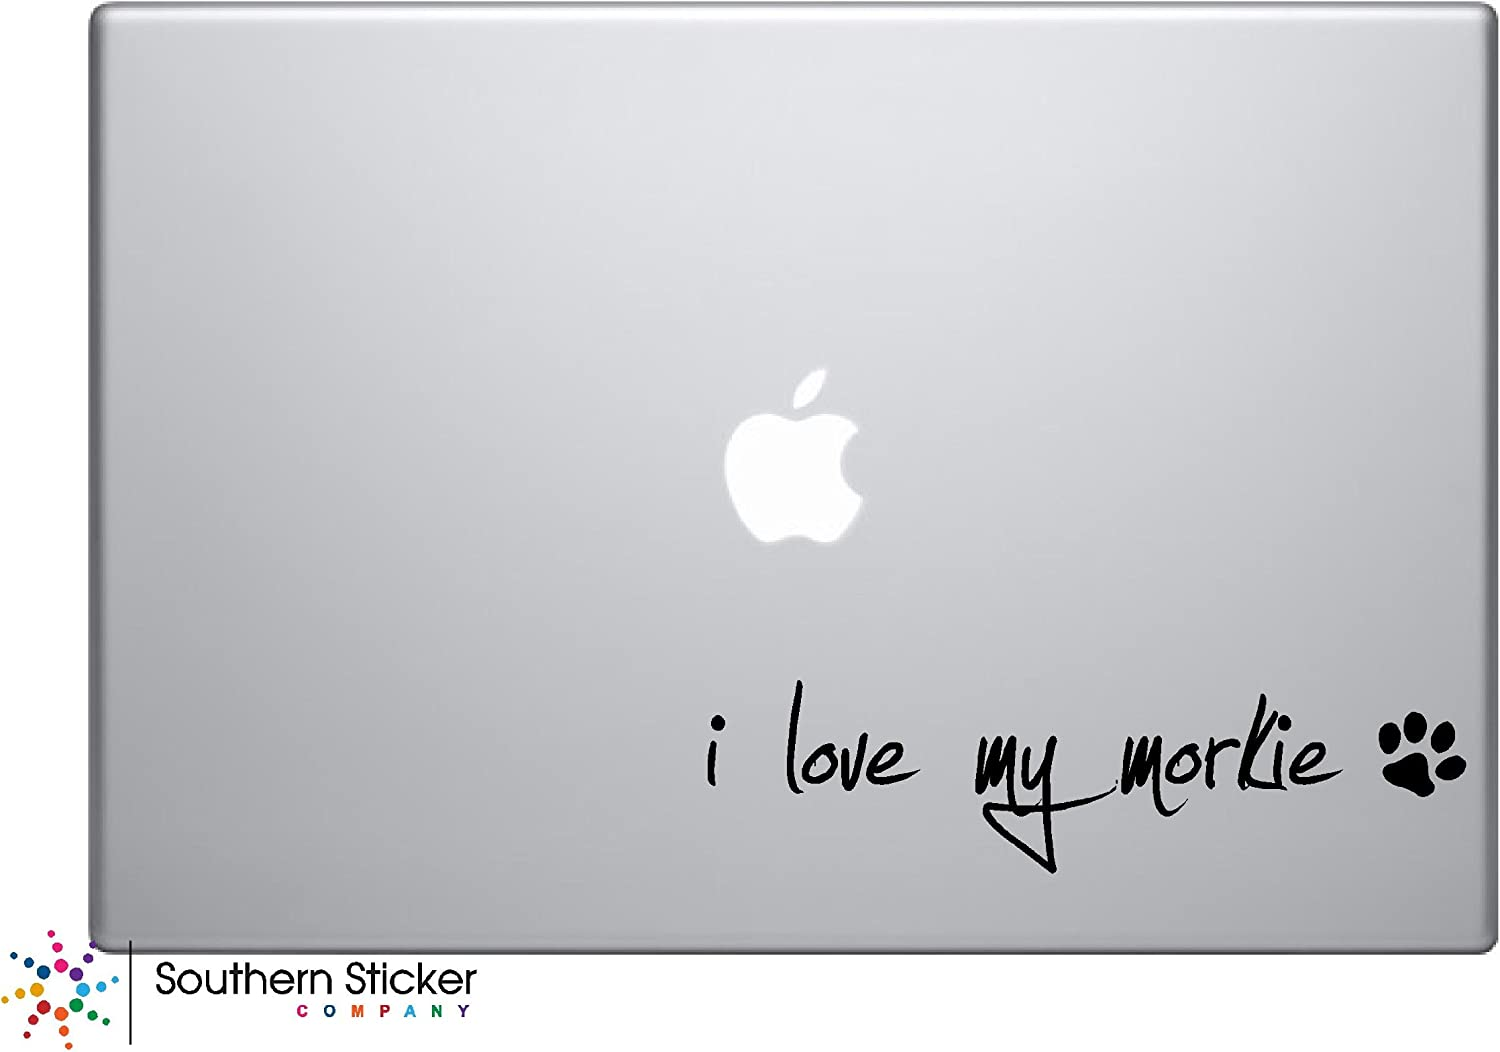 I Love My Morkie Dog Puppy Vinyl Car Sticker Symbol Silhouette Keypad Track Pad Decal Laptop Skin Ipad MacBook Window Truck Motorcycle